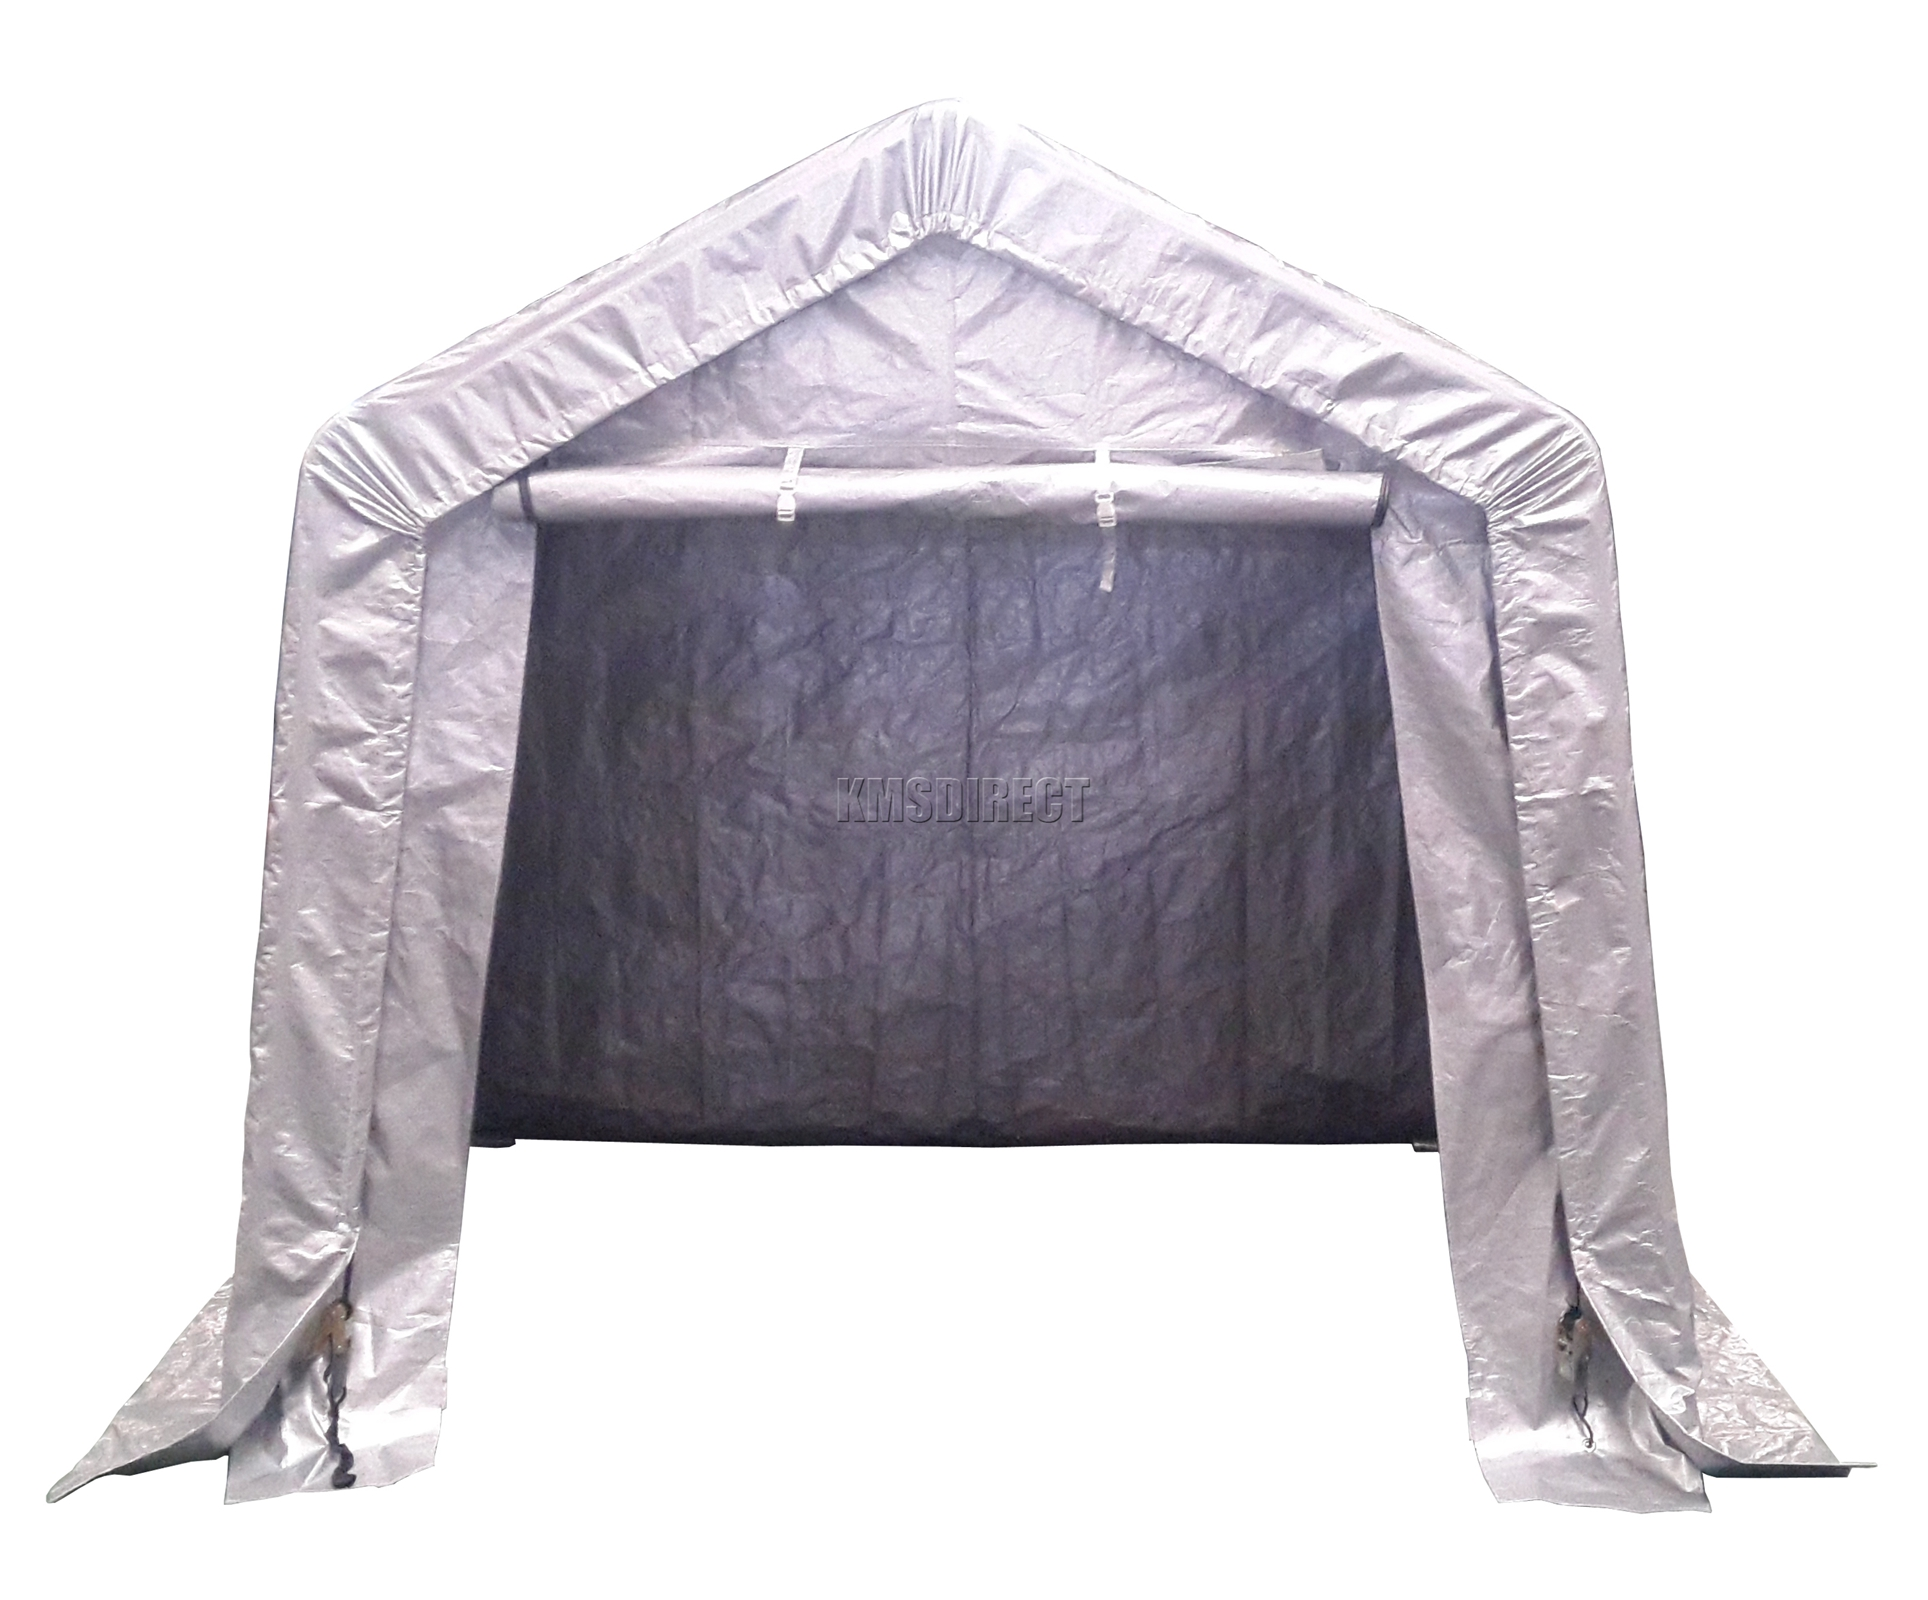 Large waterproof motor bike folding cover storage shed outdoor tent garage barn ebay - Motorcycle foldable garage tent cover ...